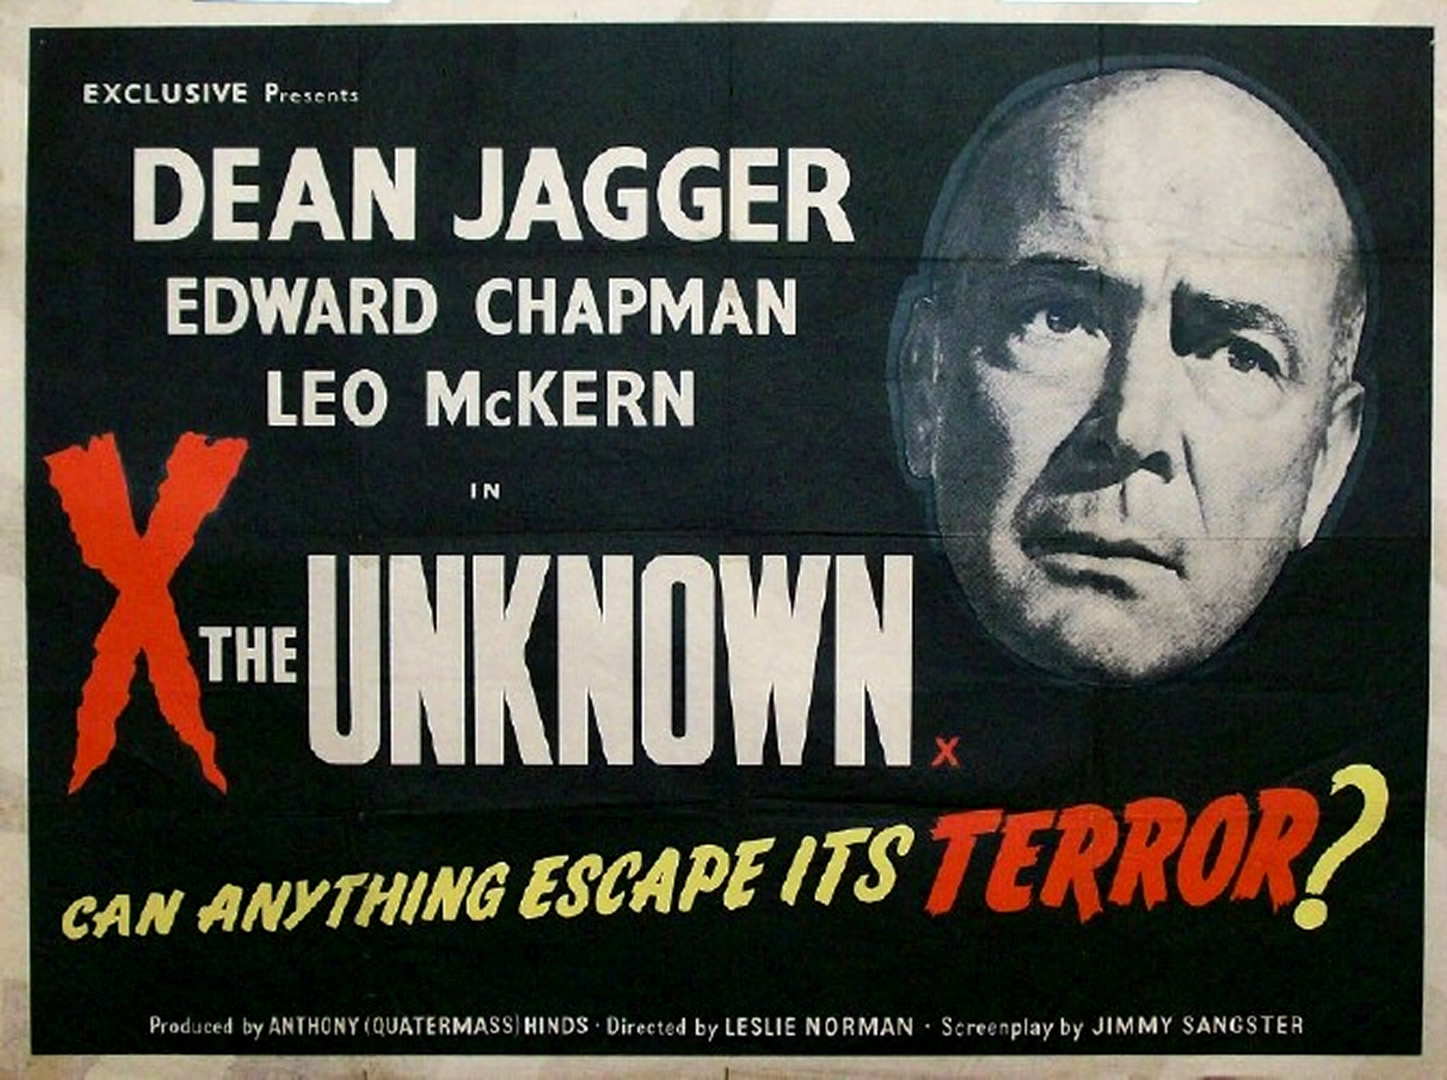 X THE UNKNOWN - Hammer Horror B Movie Posters